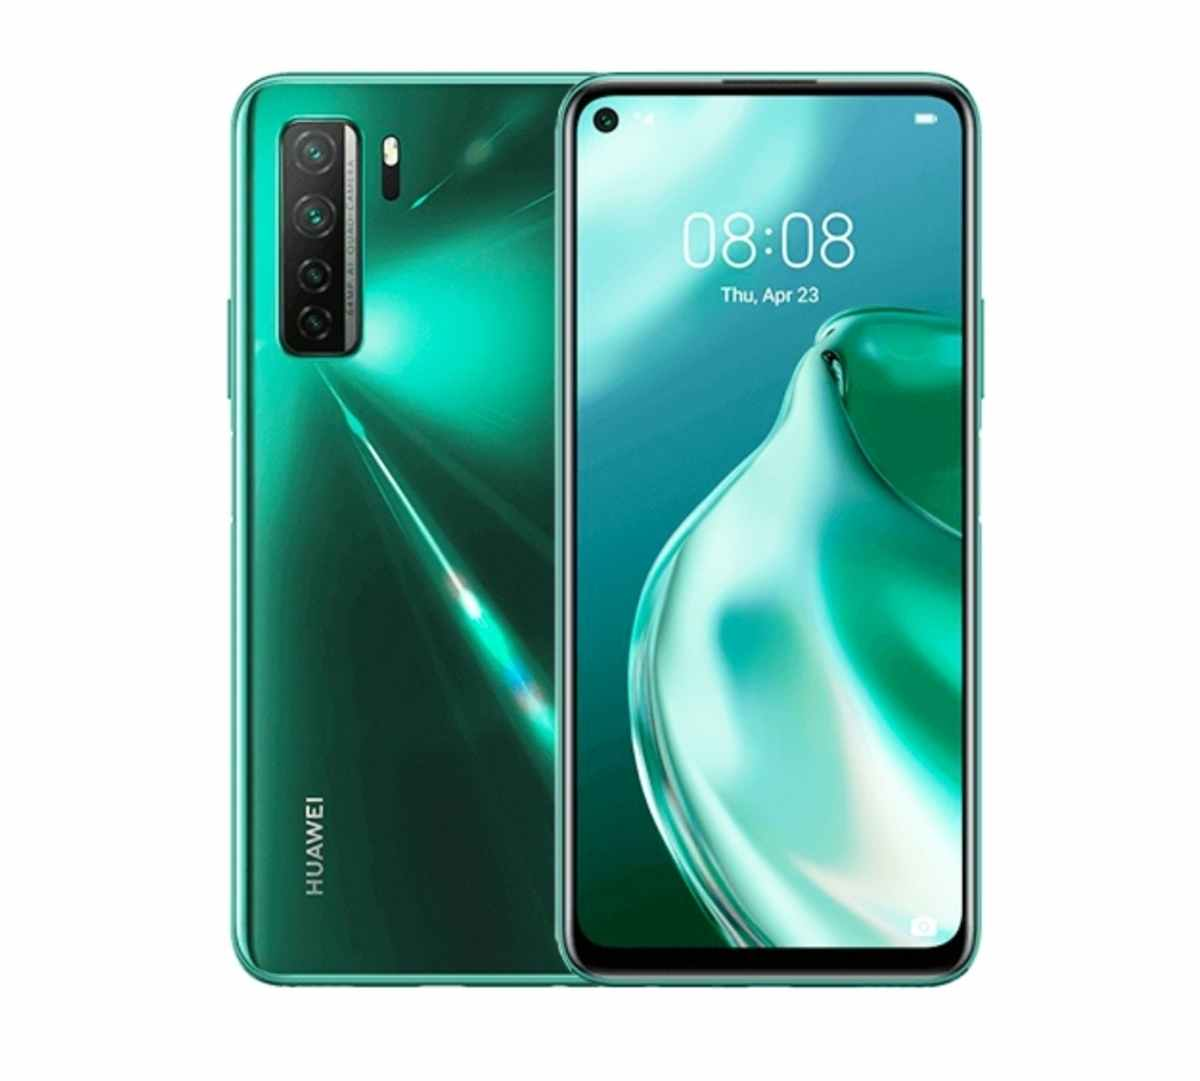 Huawei P40 Lite 5G, Huawei p40 lite 5g price in Nigeria, price of huawei p40 lite 5g in Nigeria, Huawei p40 lite 5g specs and price in Nigeria, Huawei p40 lite 5g specs, Huawei p40 lite 5g price, how much is Huawei p40 lite 5g in Nigeria, Huawei p40 lite 5g specifications, features and price